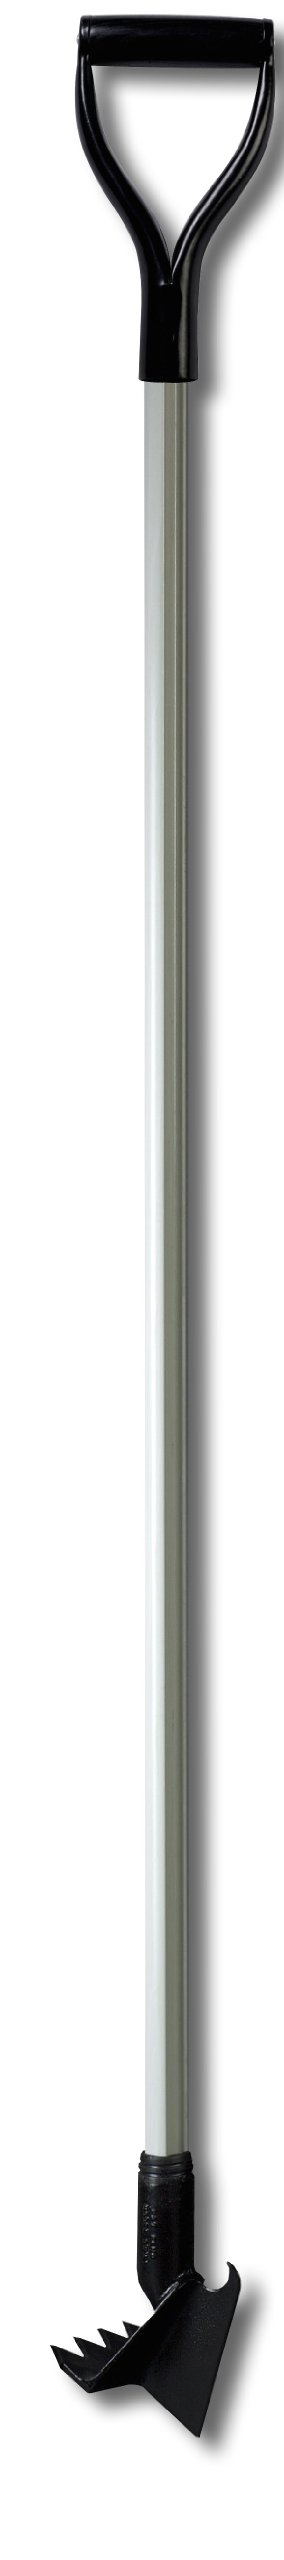 Nupla CWH-4SD Super Duty I-Beam Ceiling Hook Pole with D Grip, 4' Length